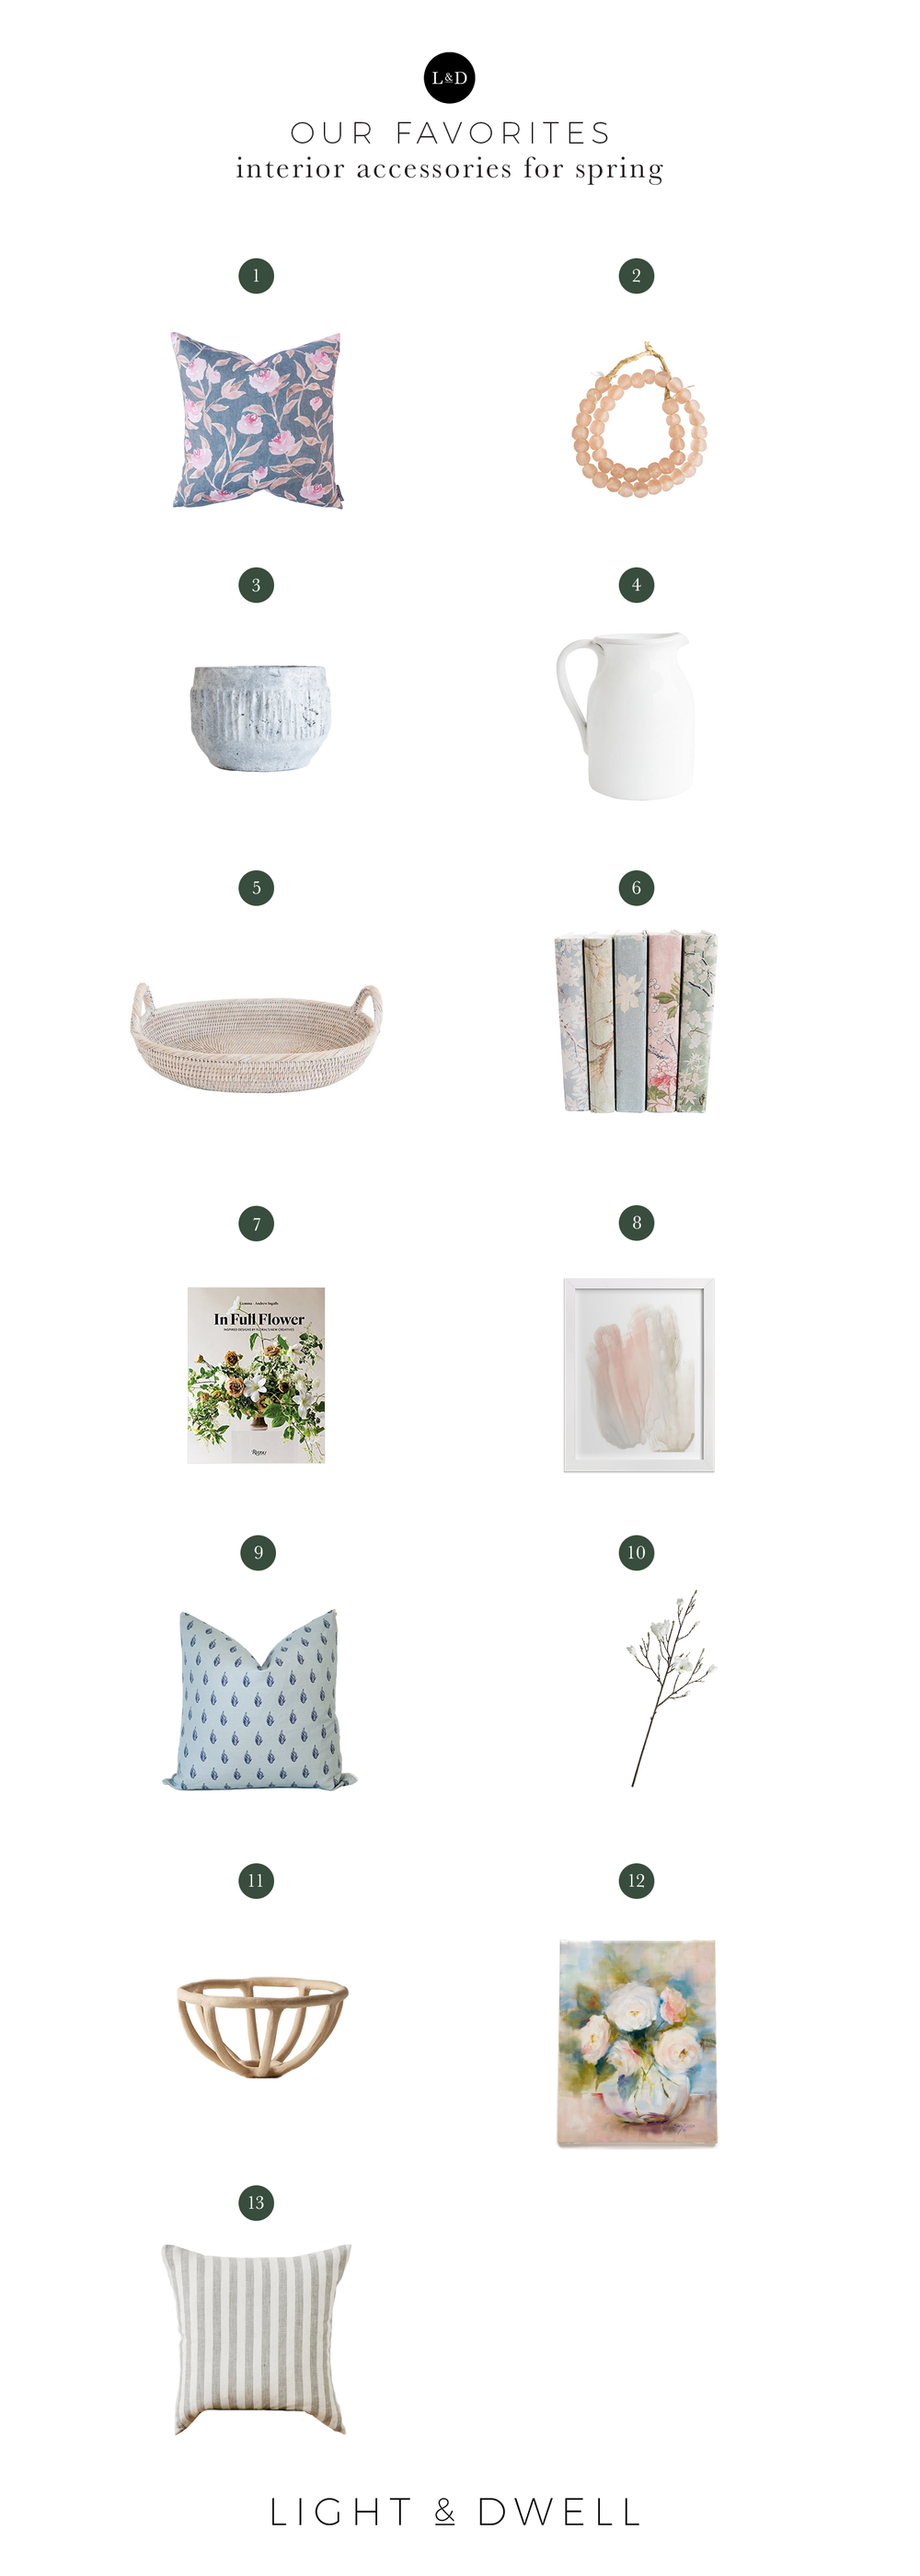 L+D_SpringInteriorAccessories.png